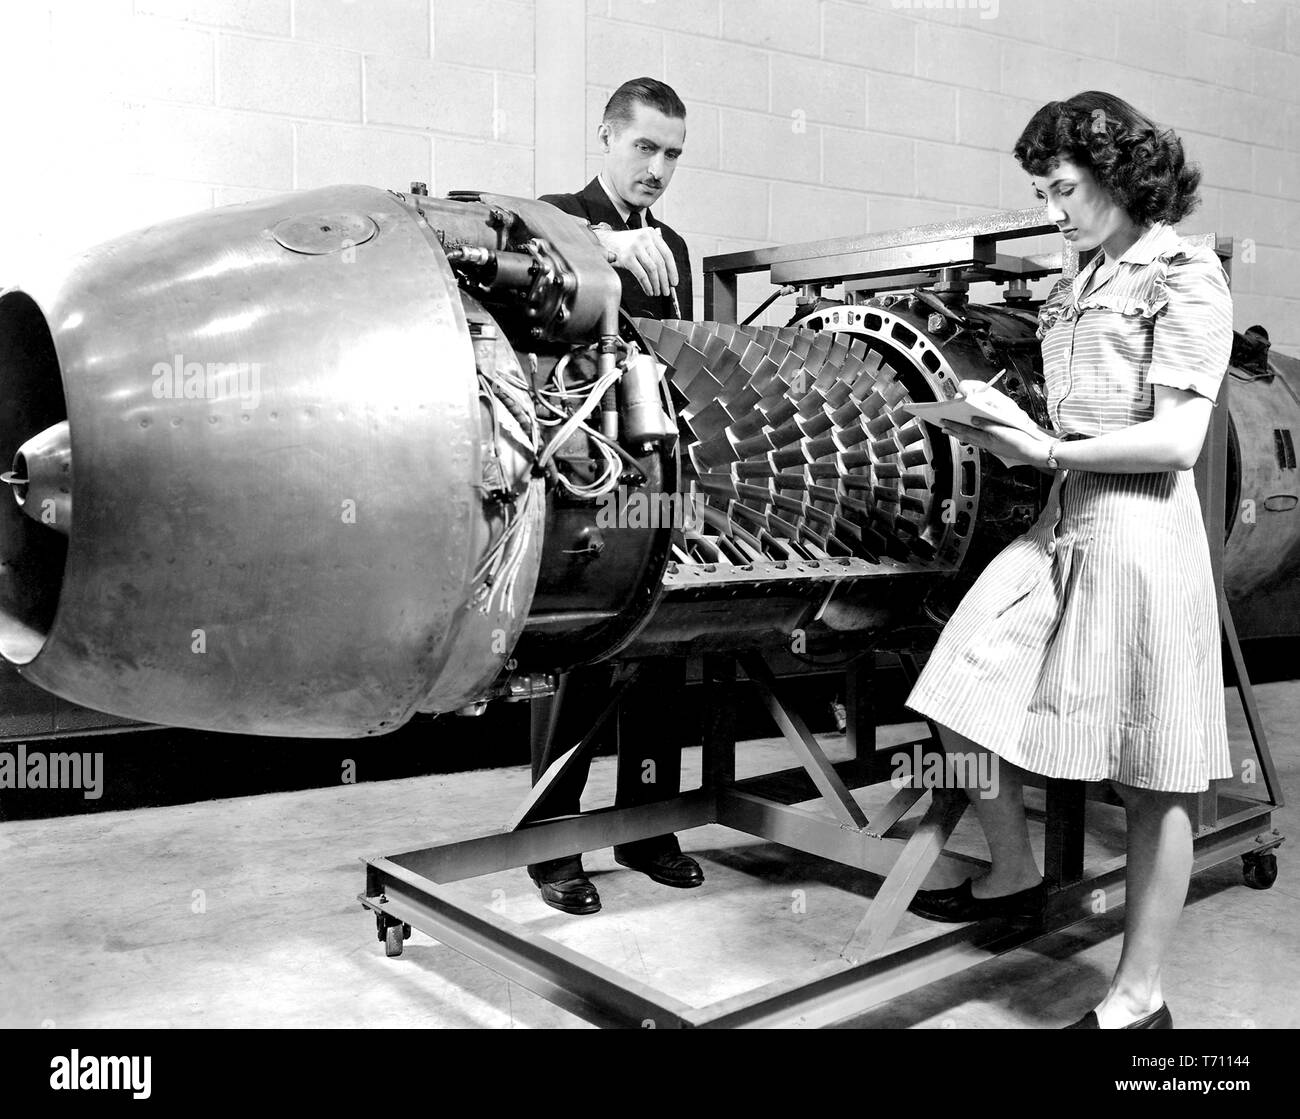 NASA employees inspecting the JUMO 004 Jet Engine with the cover removed at the Aircraft Engine Research Laboratory of the National Advisory Committee for Aeronautics (NACA), Cleveland, Ohio, March 24, 1946. Image courtesy National Aeronautics and Space Administration (NASA). () - Stock Image